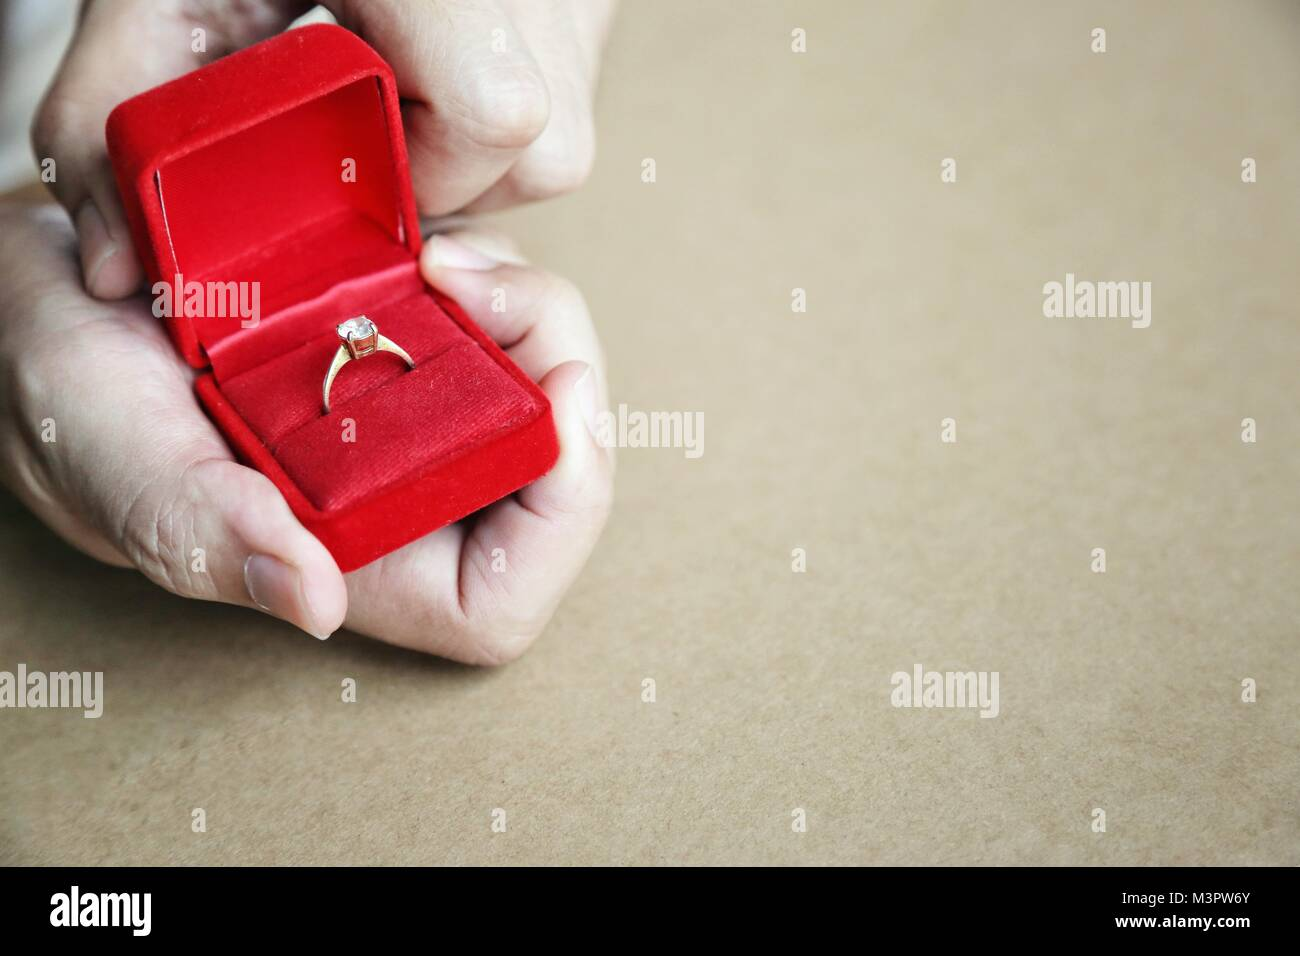 Red gift box opened with diamond ring in mans hands. Concept of the engagement ring, Valentine surprise gift, symbol - Stock Image